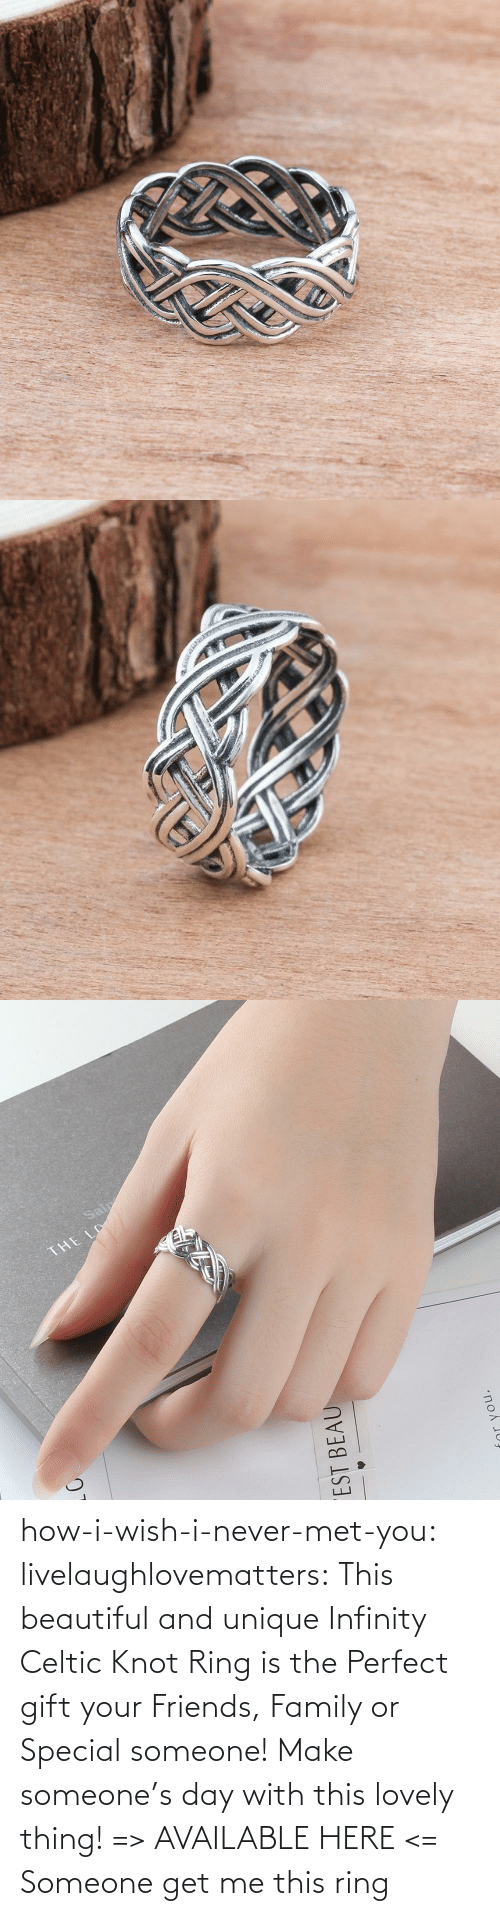 Infinity: how-i-wish-i-never-met-you: livelaughlovematters:  This beautiful and unique Infinity Celtic Knot Ring is the Perfect gift your Friends, Family or Special someone! Make someone's day with this lovely thing! => AVAILABLE HERE <=    Someone get me this ring